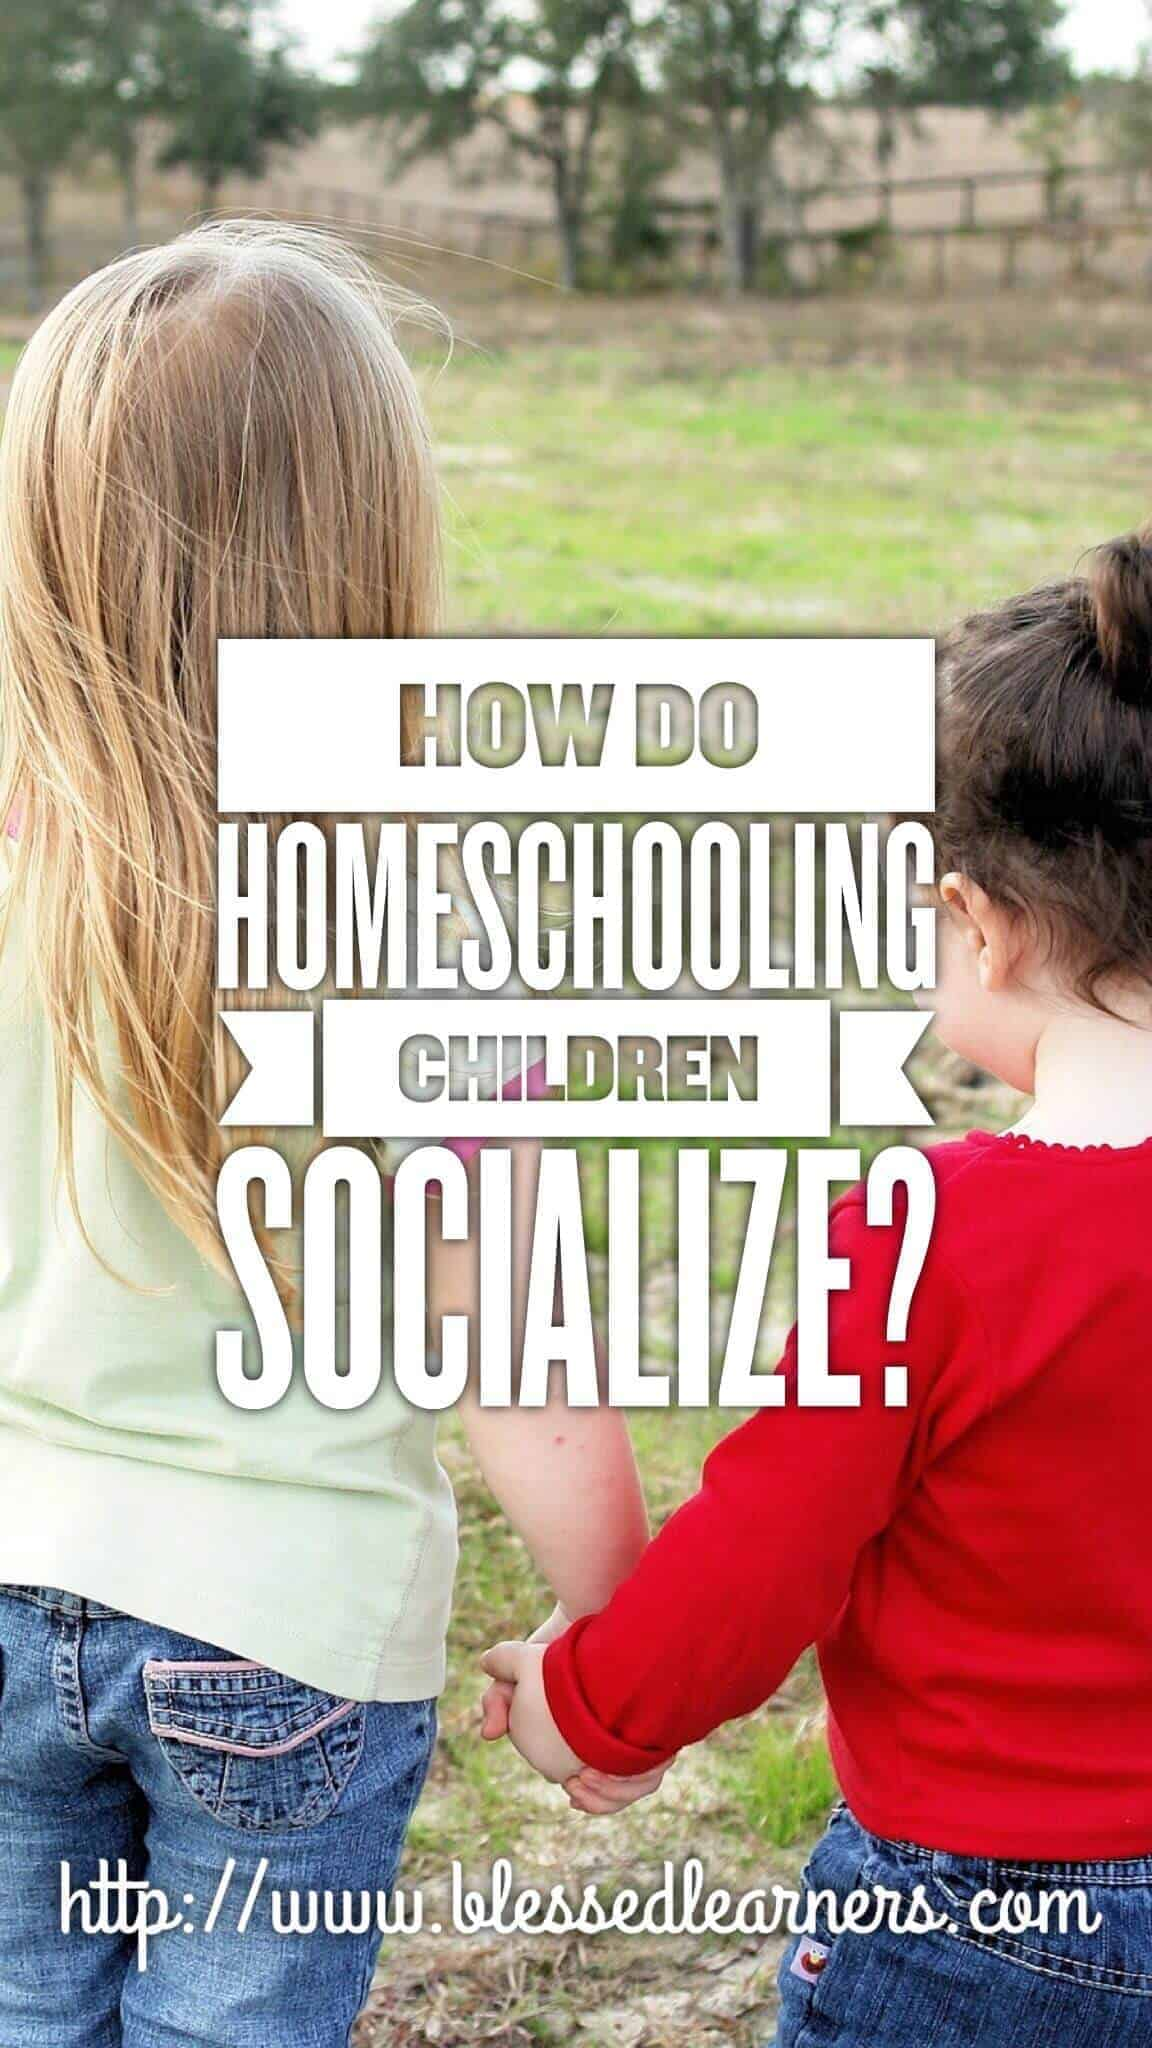 How do homeschooling children socialize